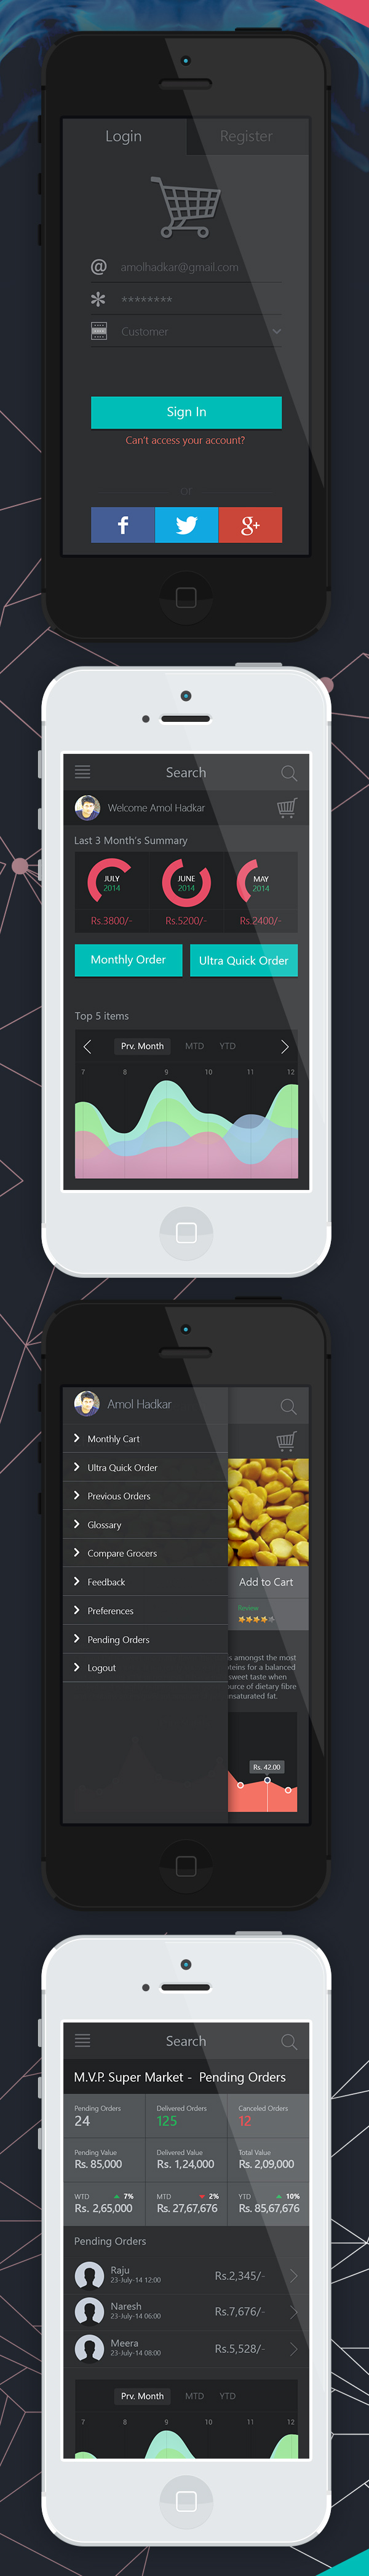 Shirt design app for iphone - Mobile App Ui Designs With Amazing User Experience